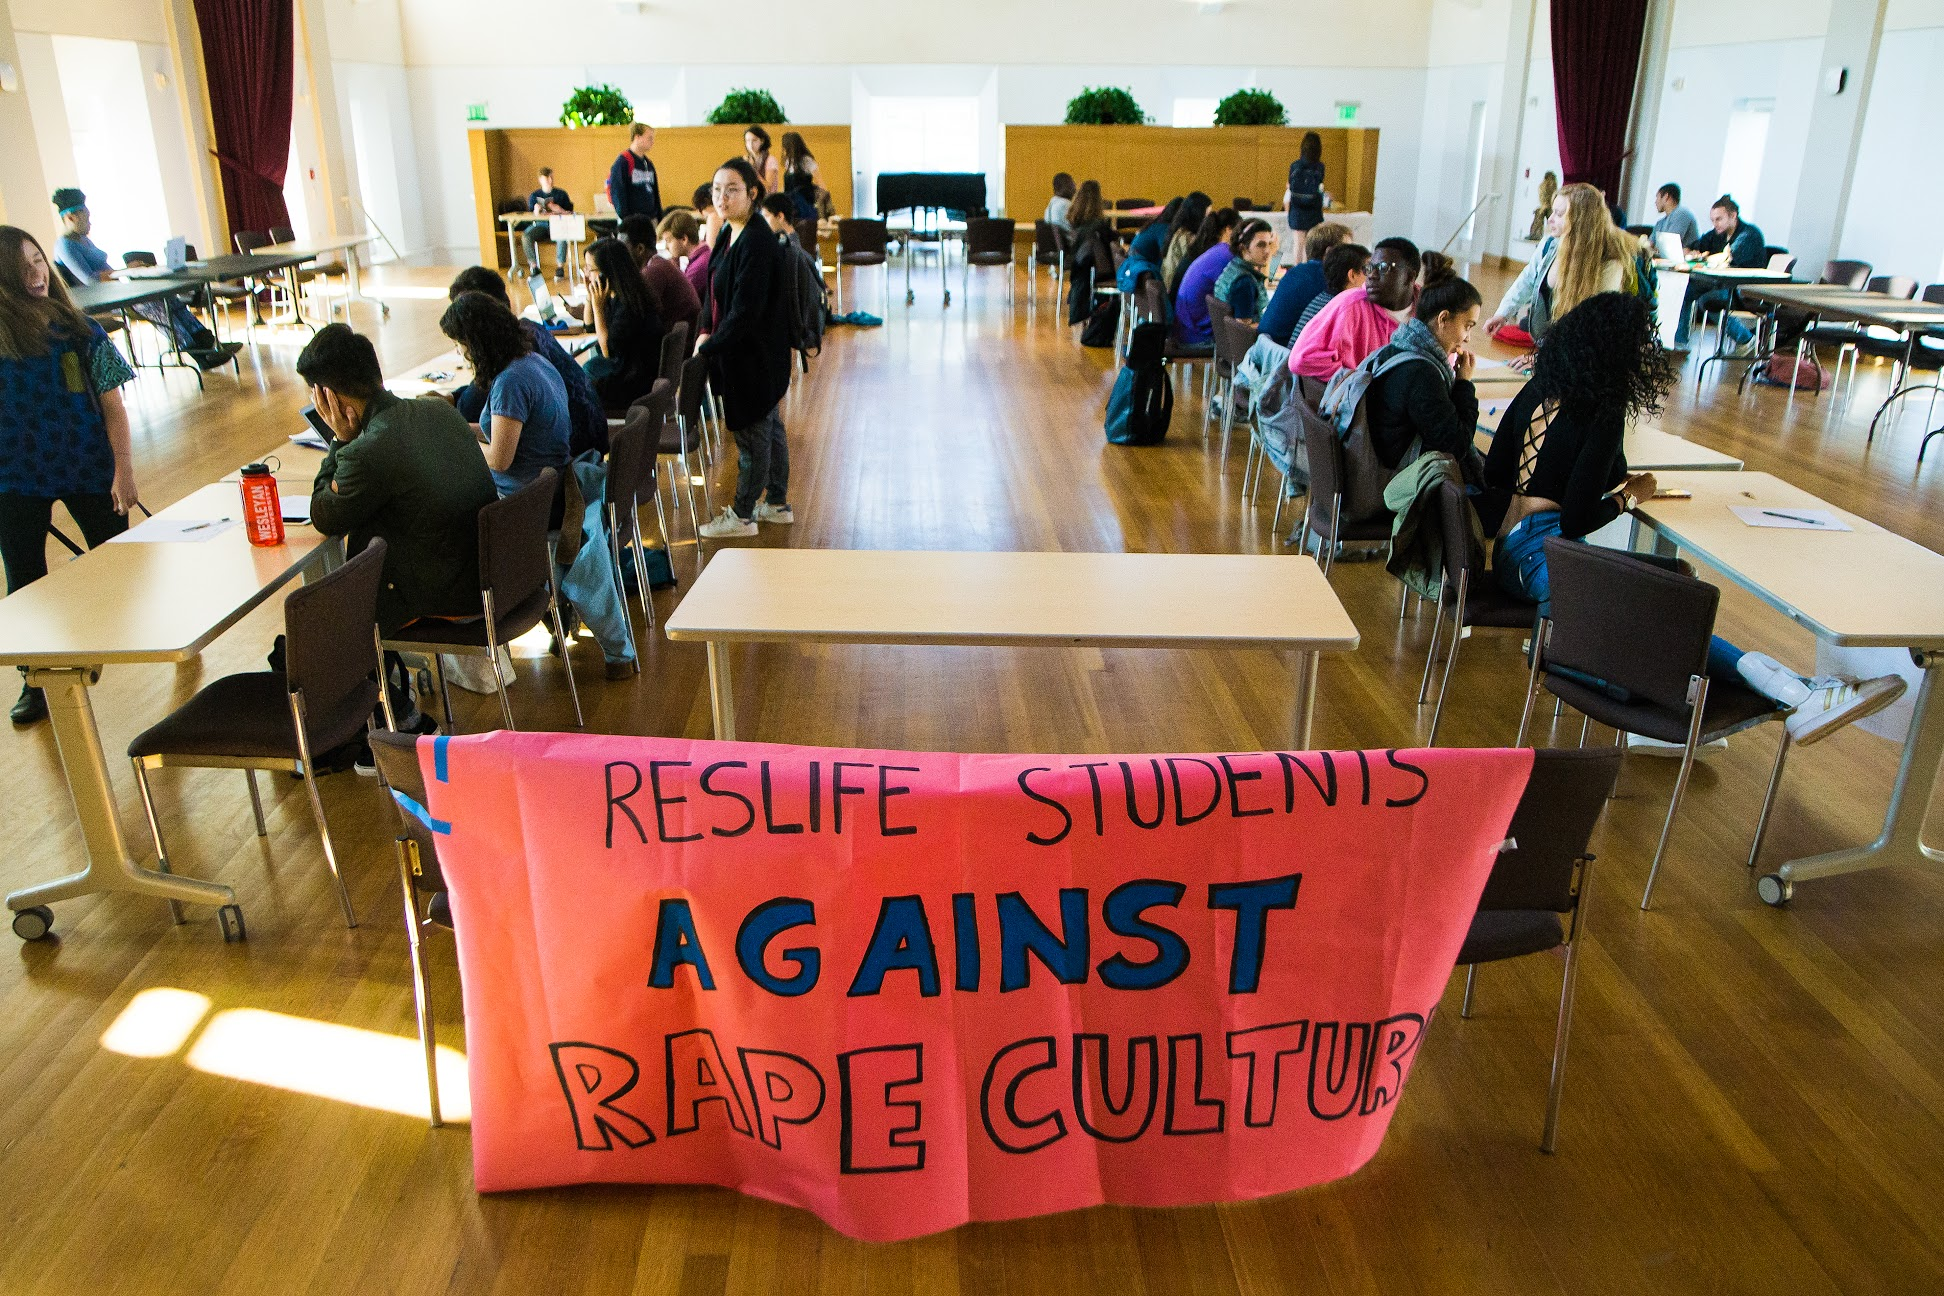 On Wednesday, Nov. 2, student staff of ResLife protested what they see as its failure to properly address accusations of sexual assault.